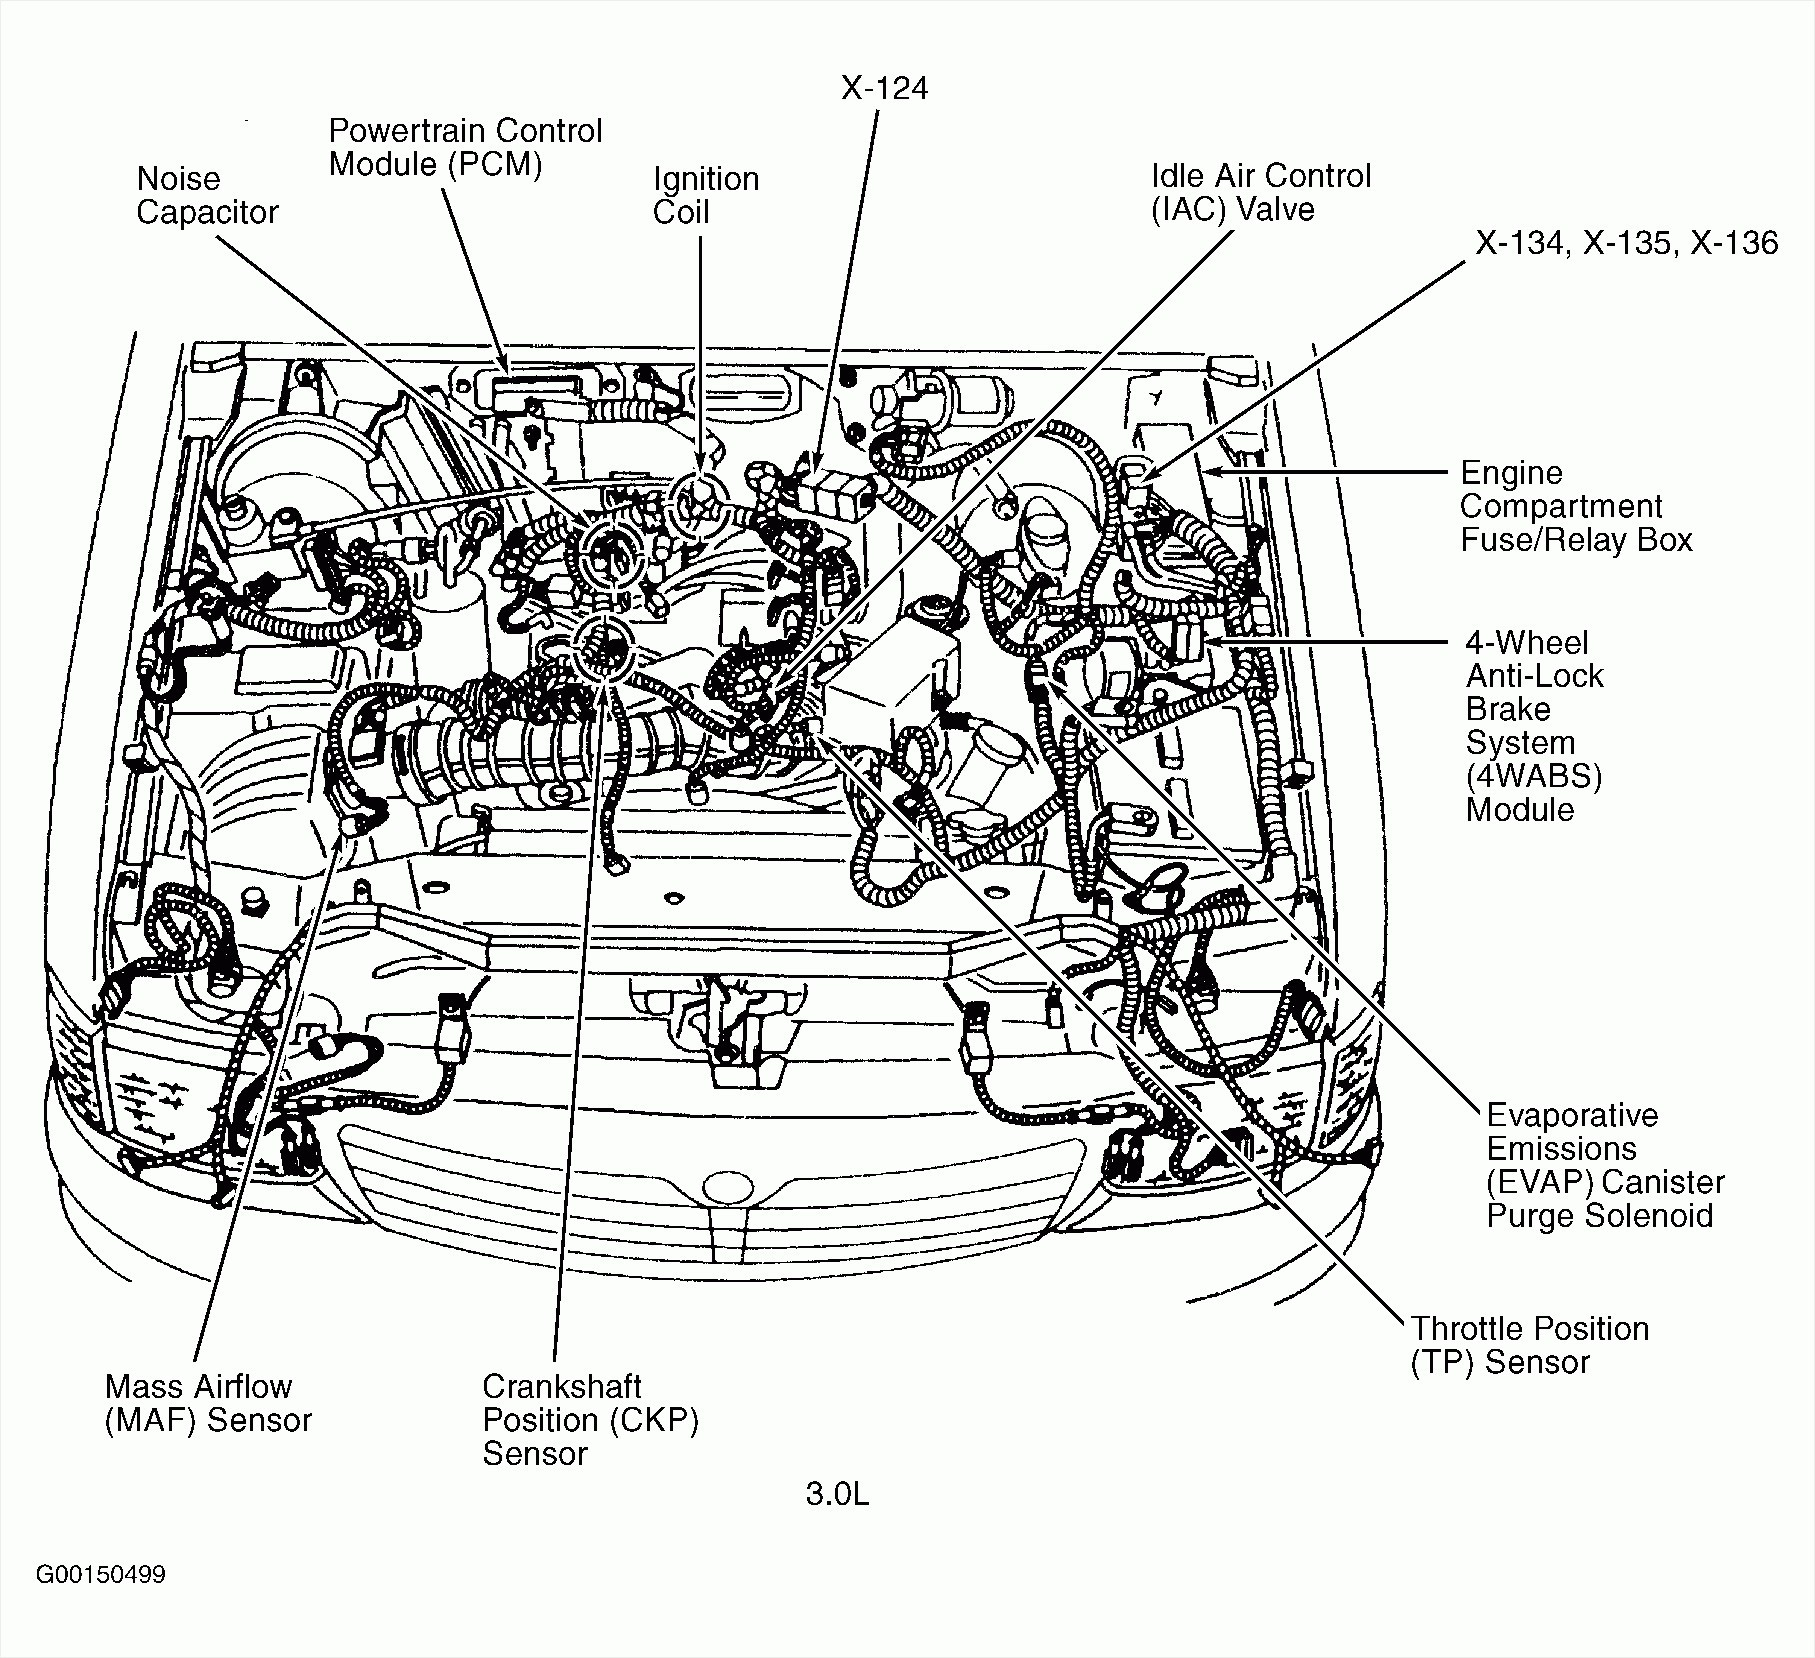 1999 3400 v6 engine diagram wiring diagram data rh 18 10 5 reisen fuer meister de